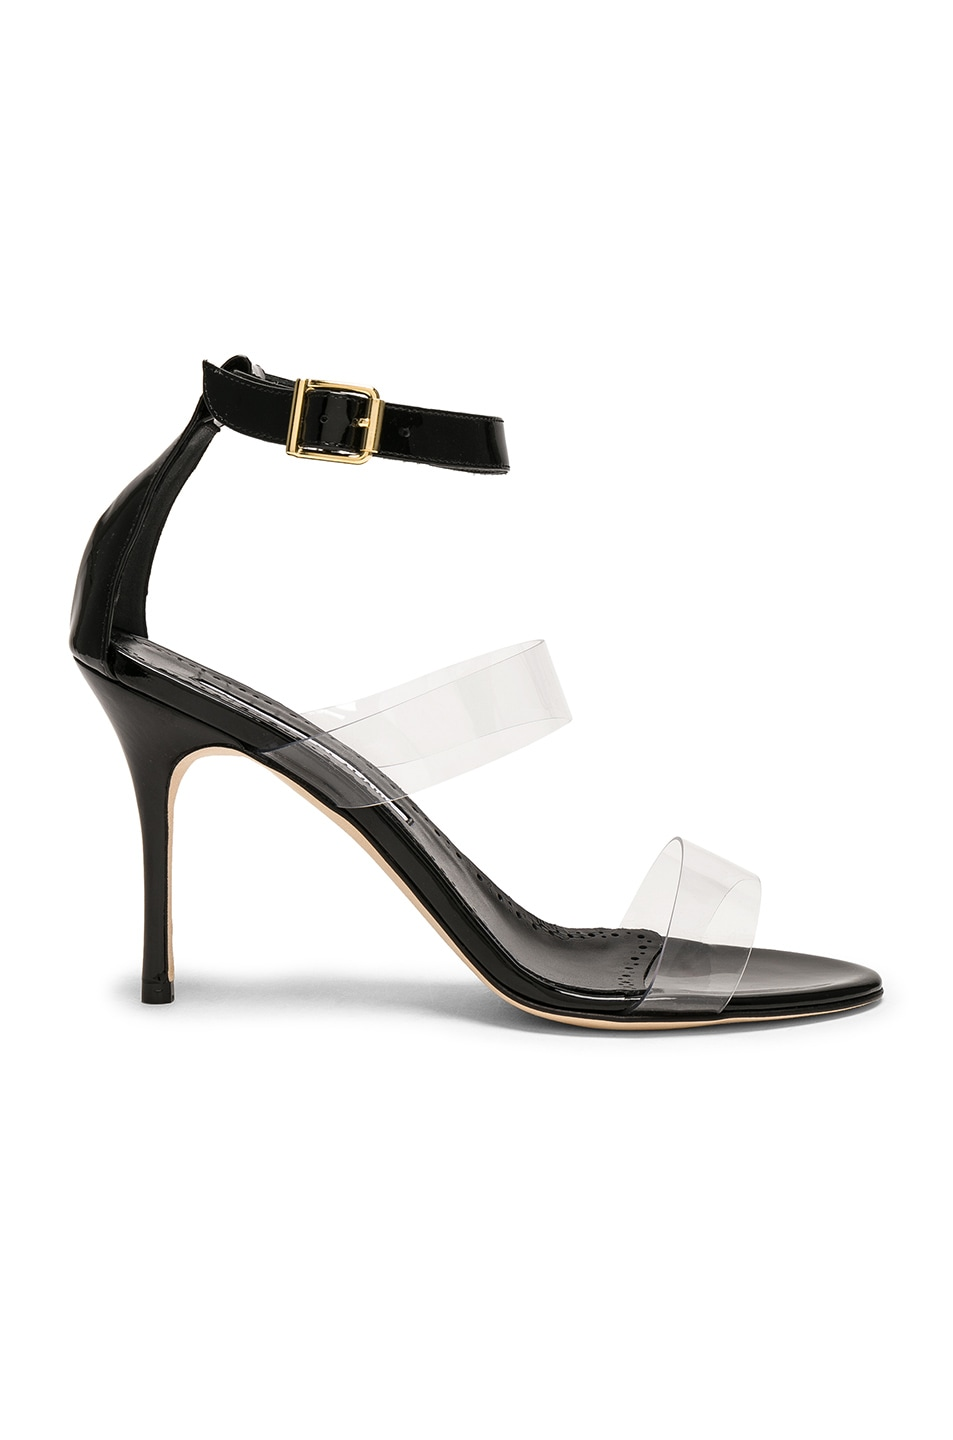 Image 1 of Manolo Blahnik Patent Leather & PVC Kaotic 90 Sandals in Black Patent & Clear PVC